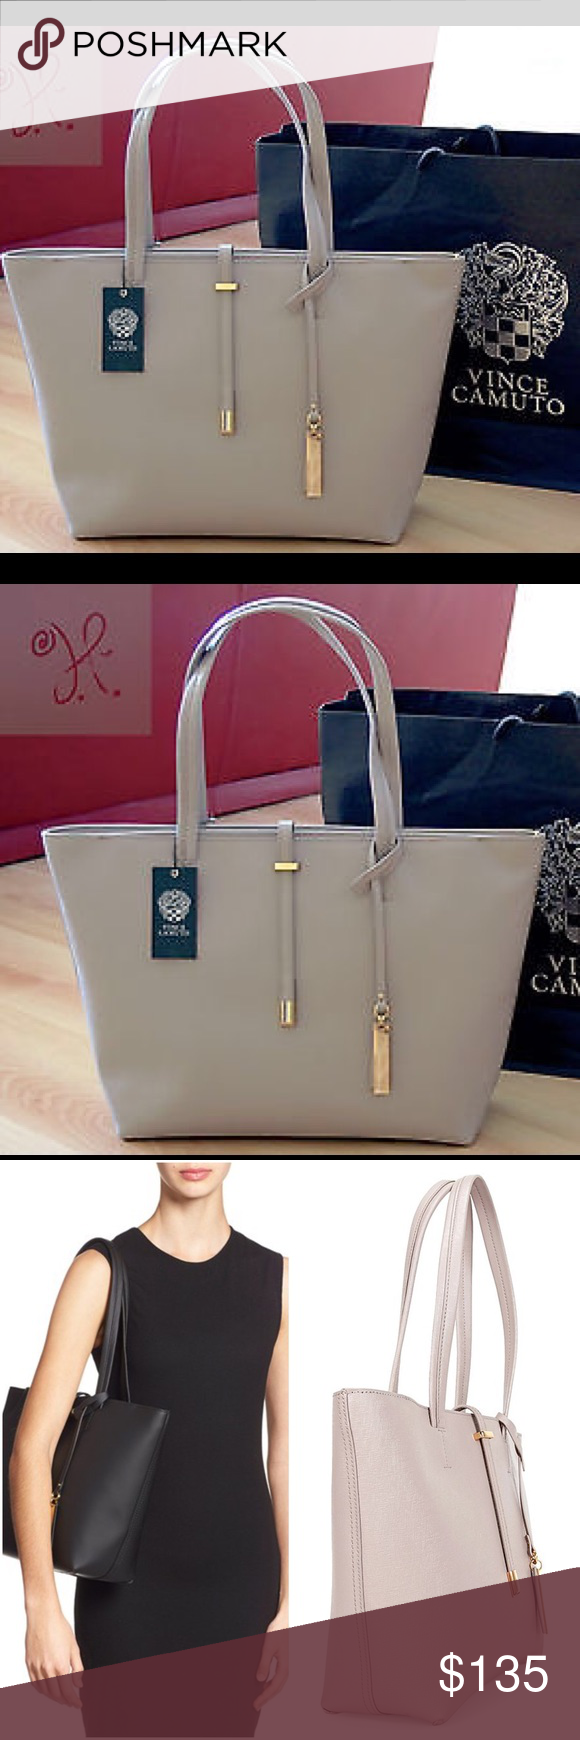 6613d8748851 Vince Camuto Leila Small Saffiano Leather Tote The perfect posh bag ...